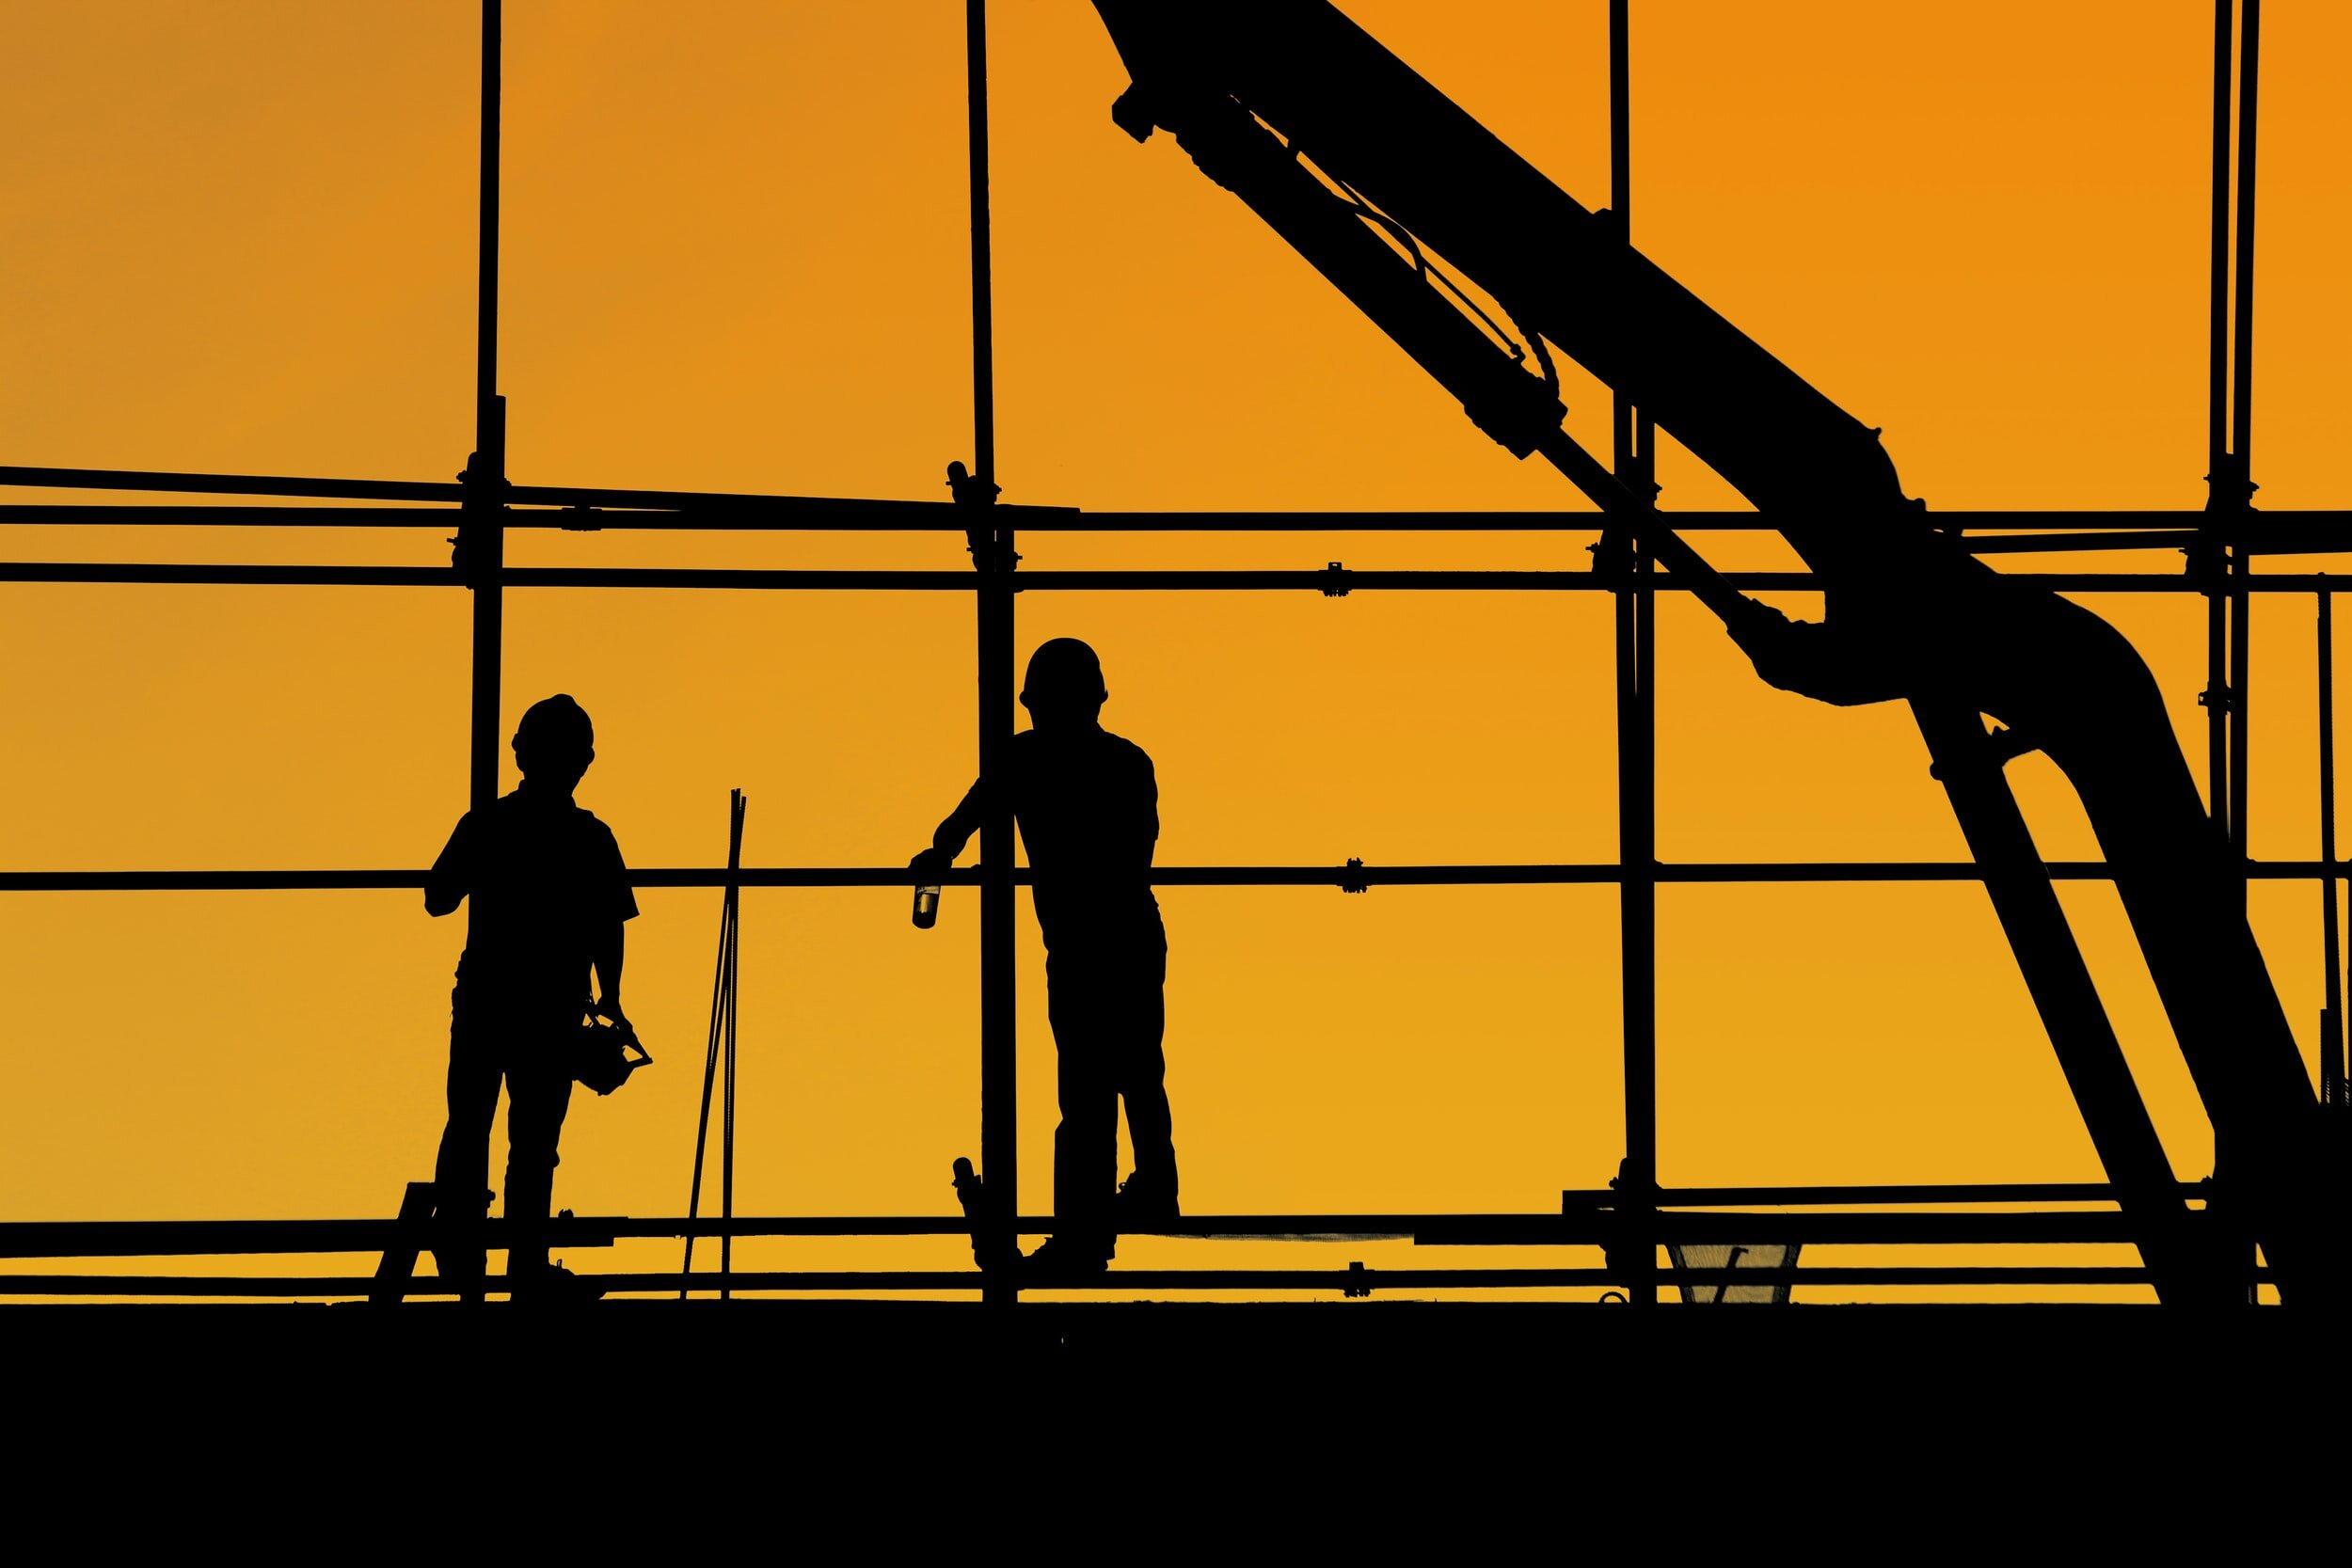 Image of workers against a orange sky